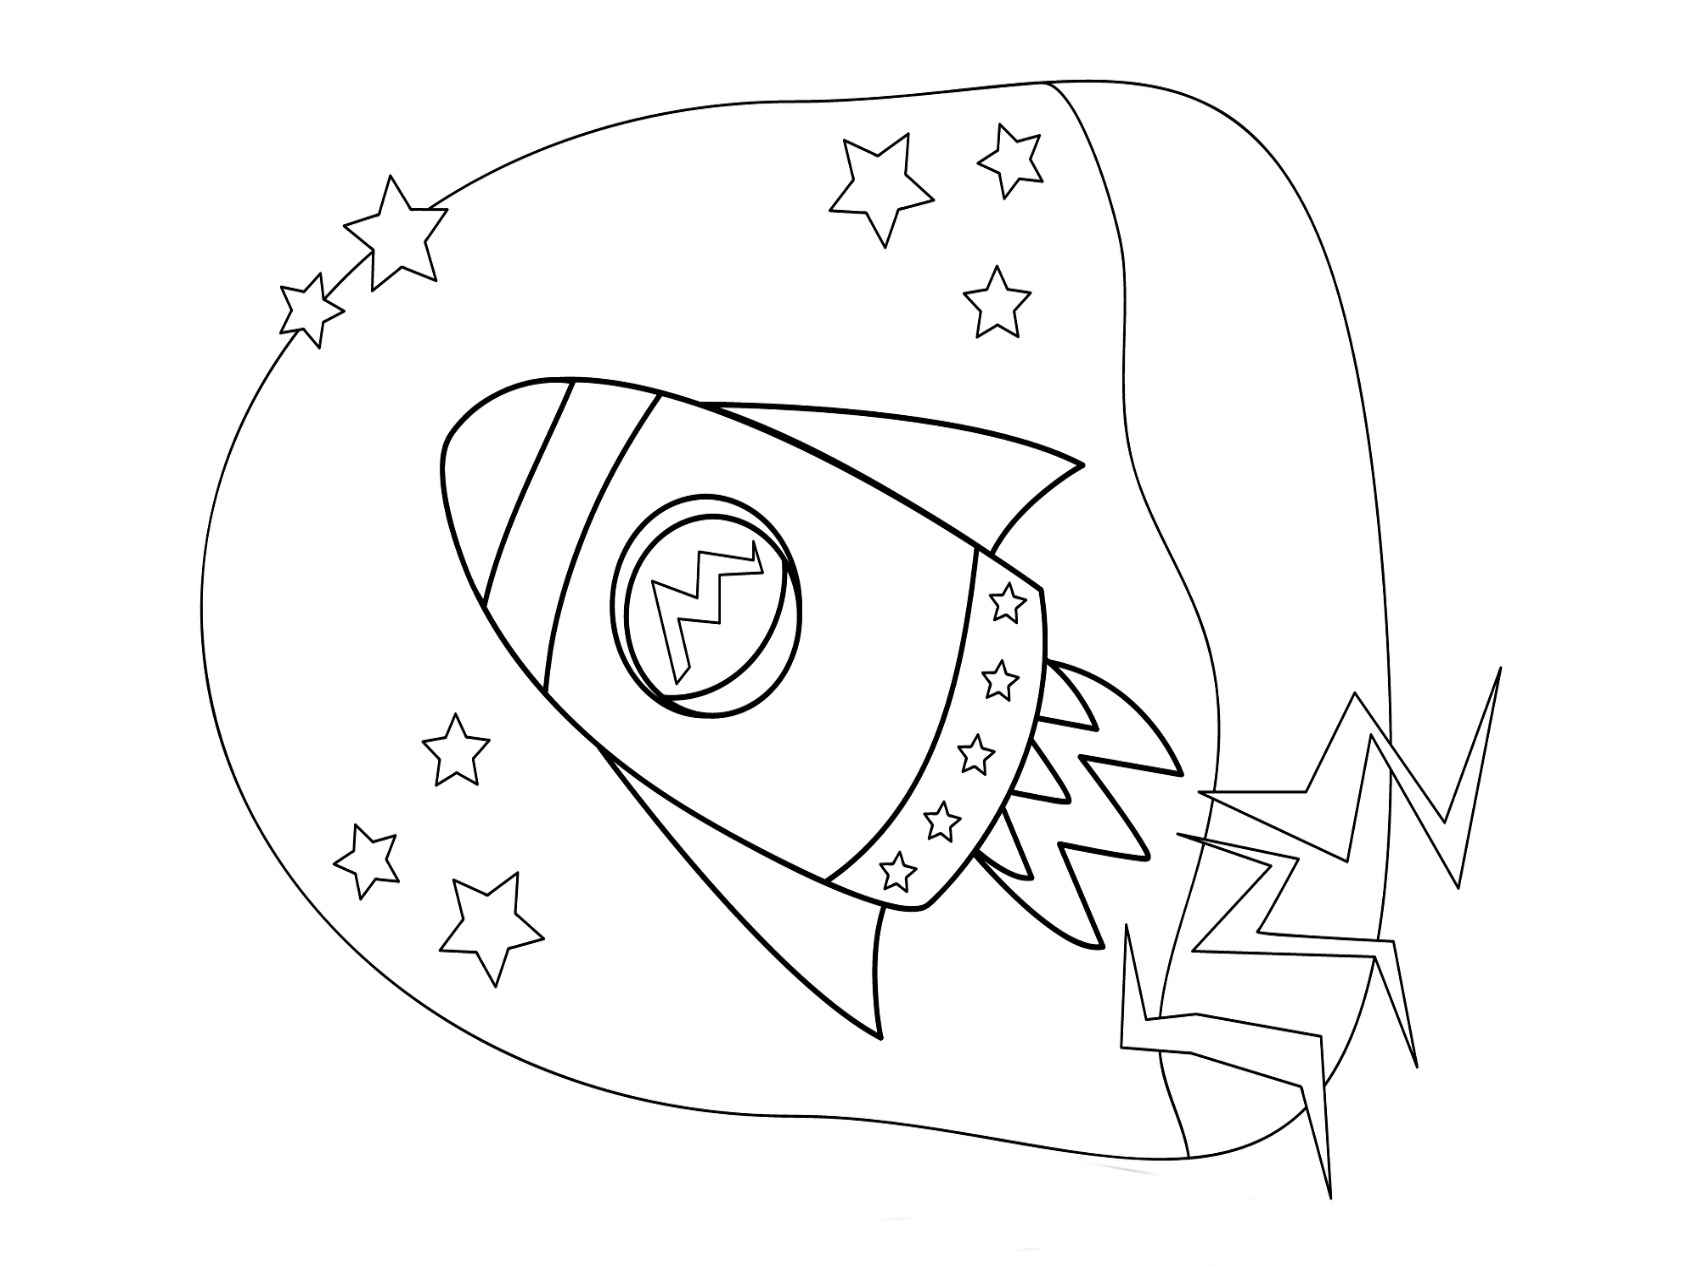 Rocket Ship Coloring Pages To Download And Print For Free